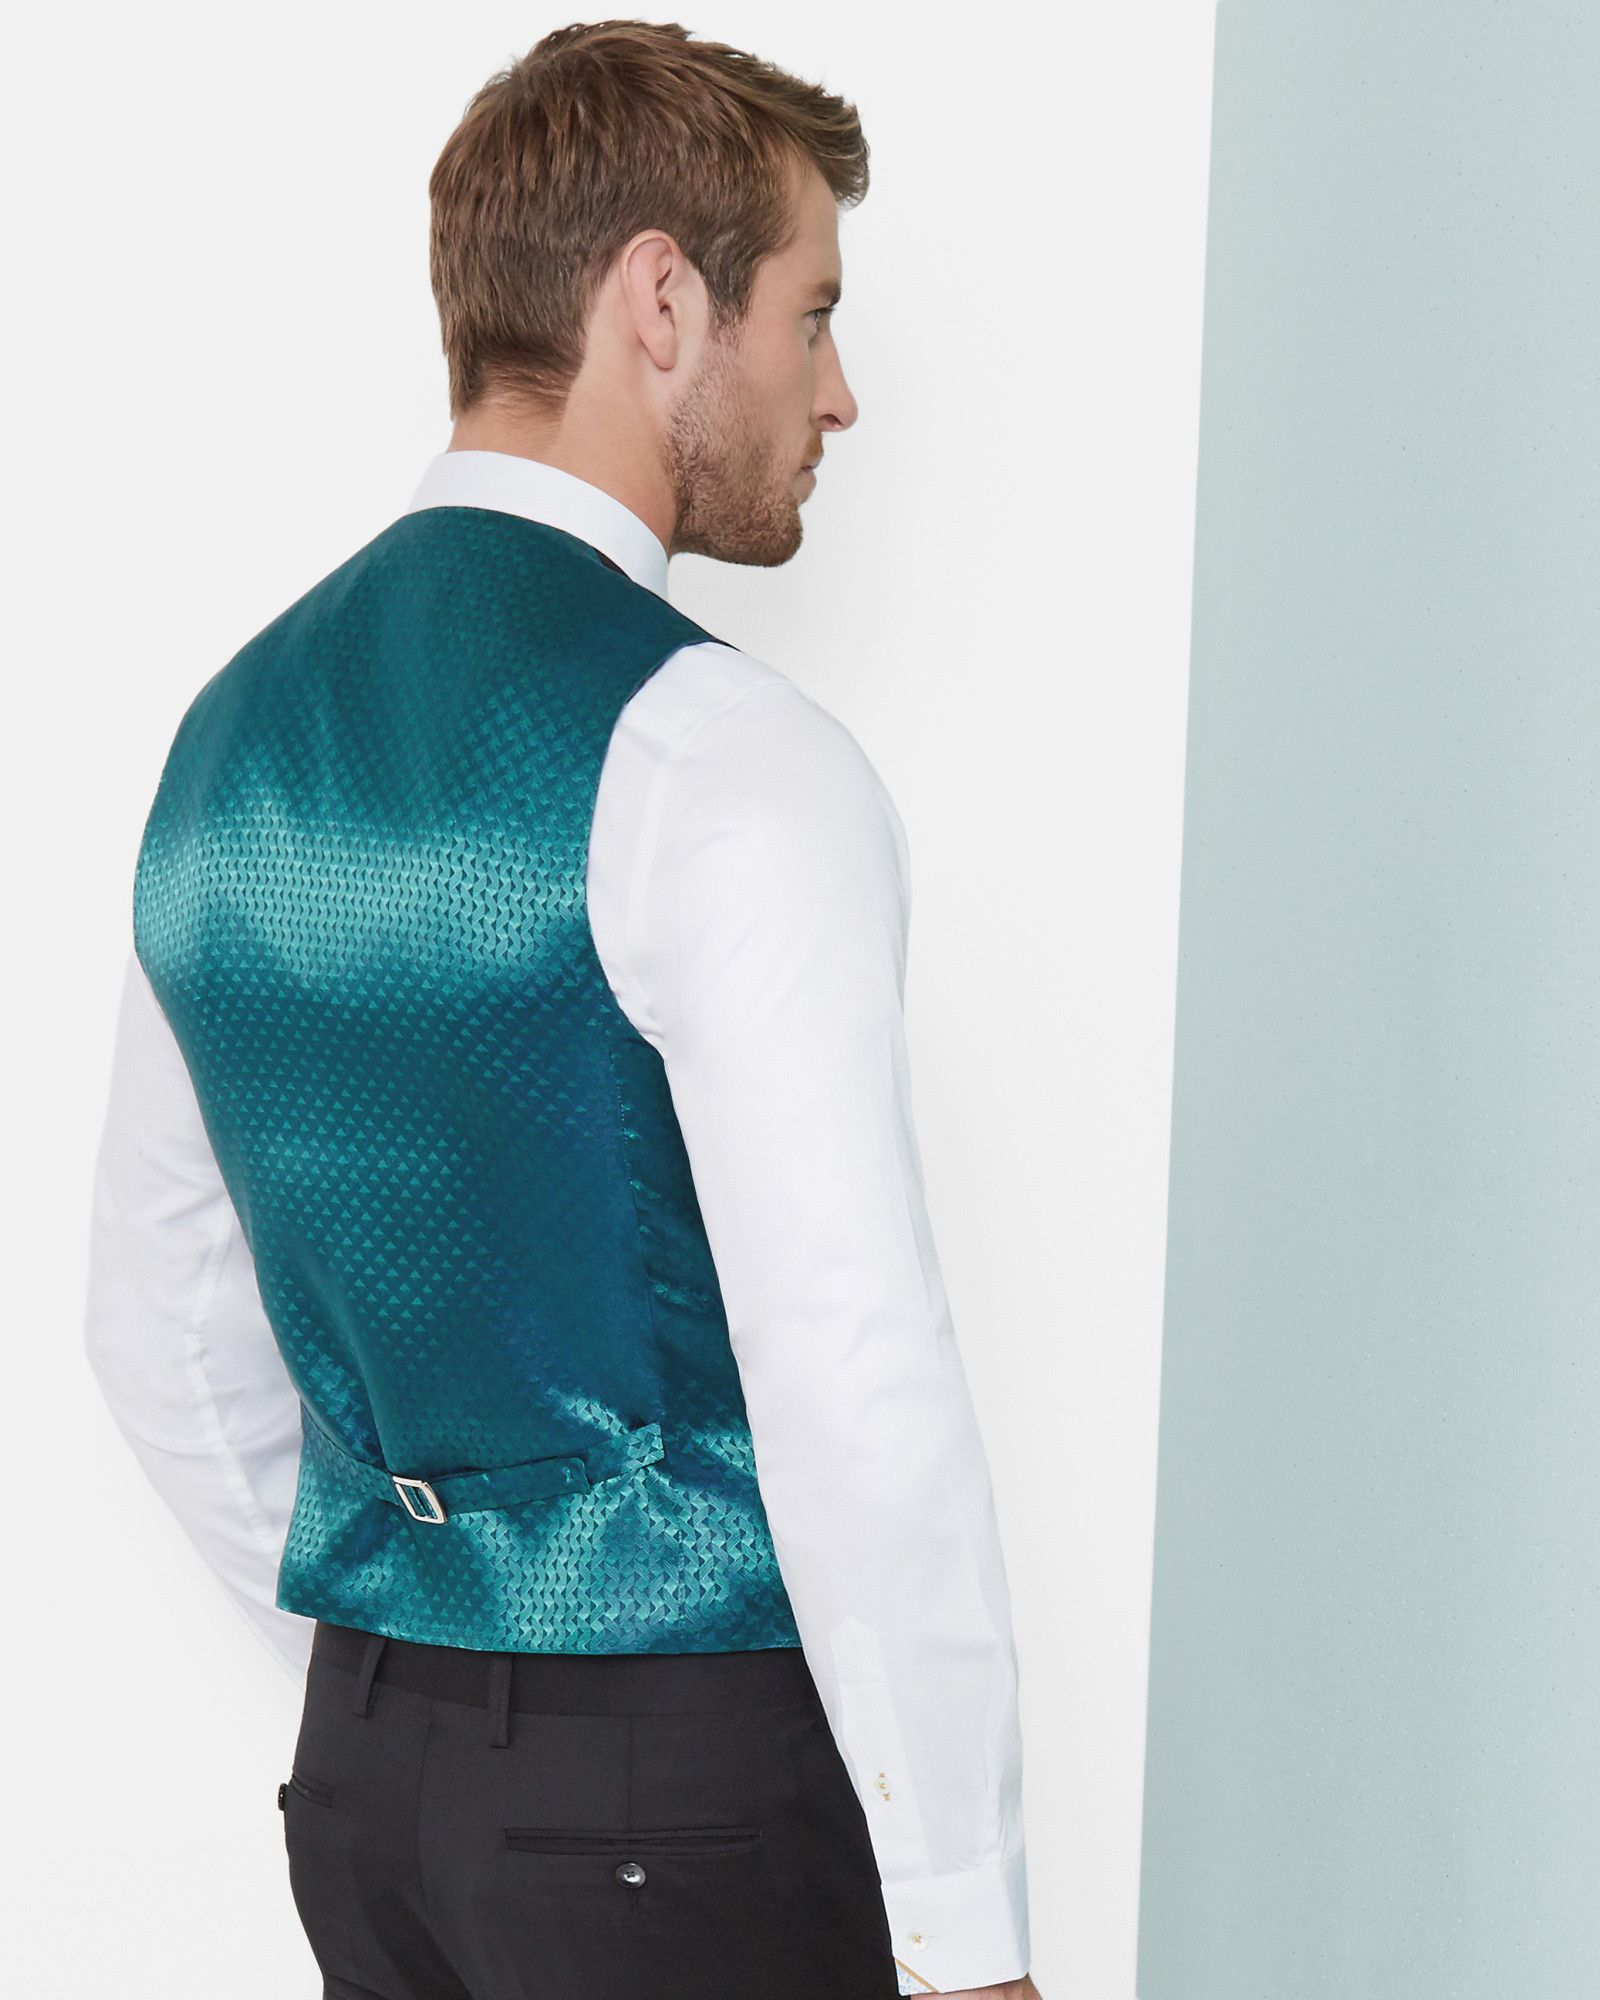 Debonair wool waistcoat - Black | Suits | Ted Baker | co at ...